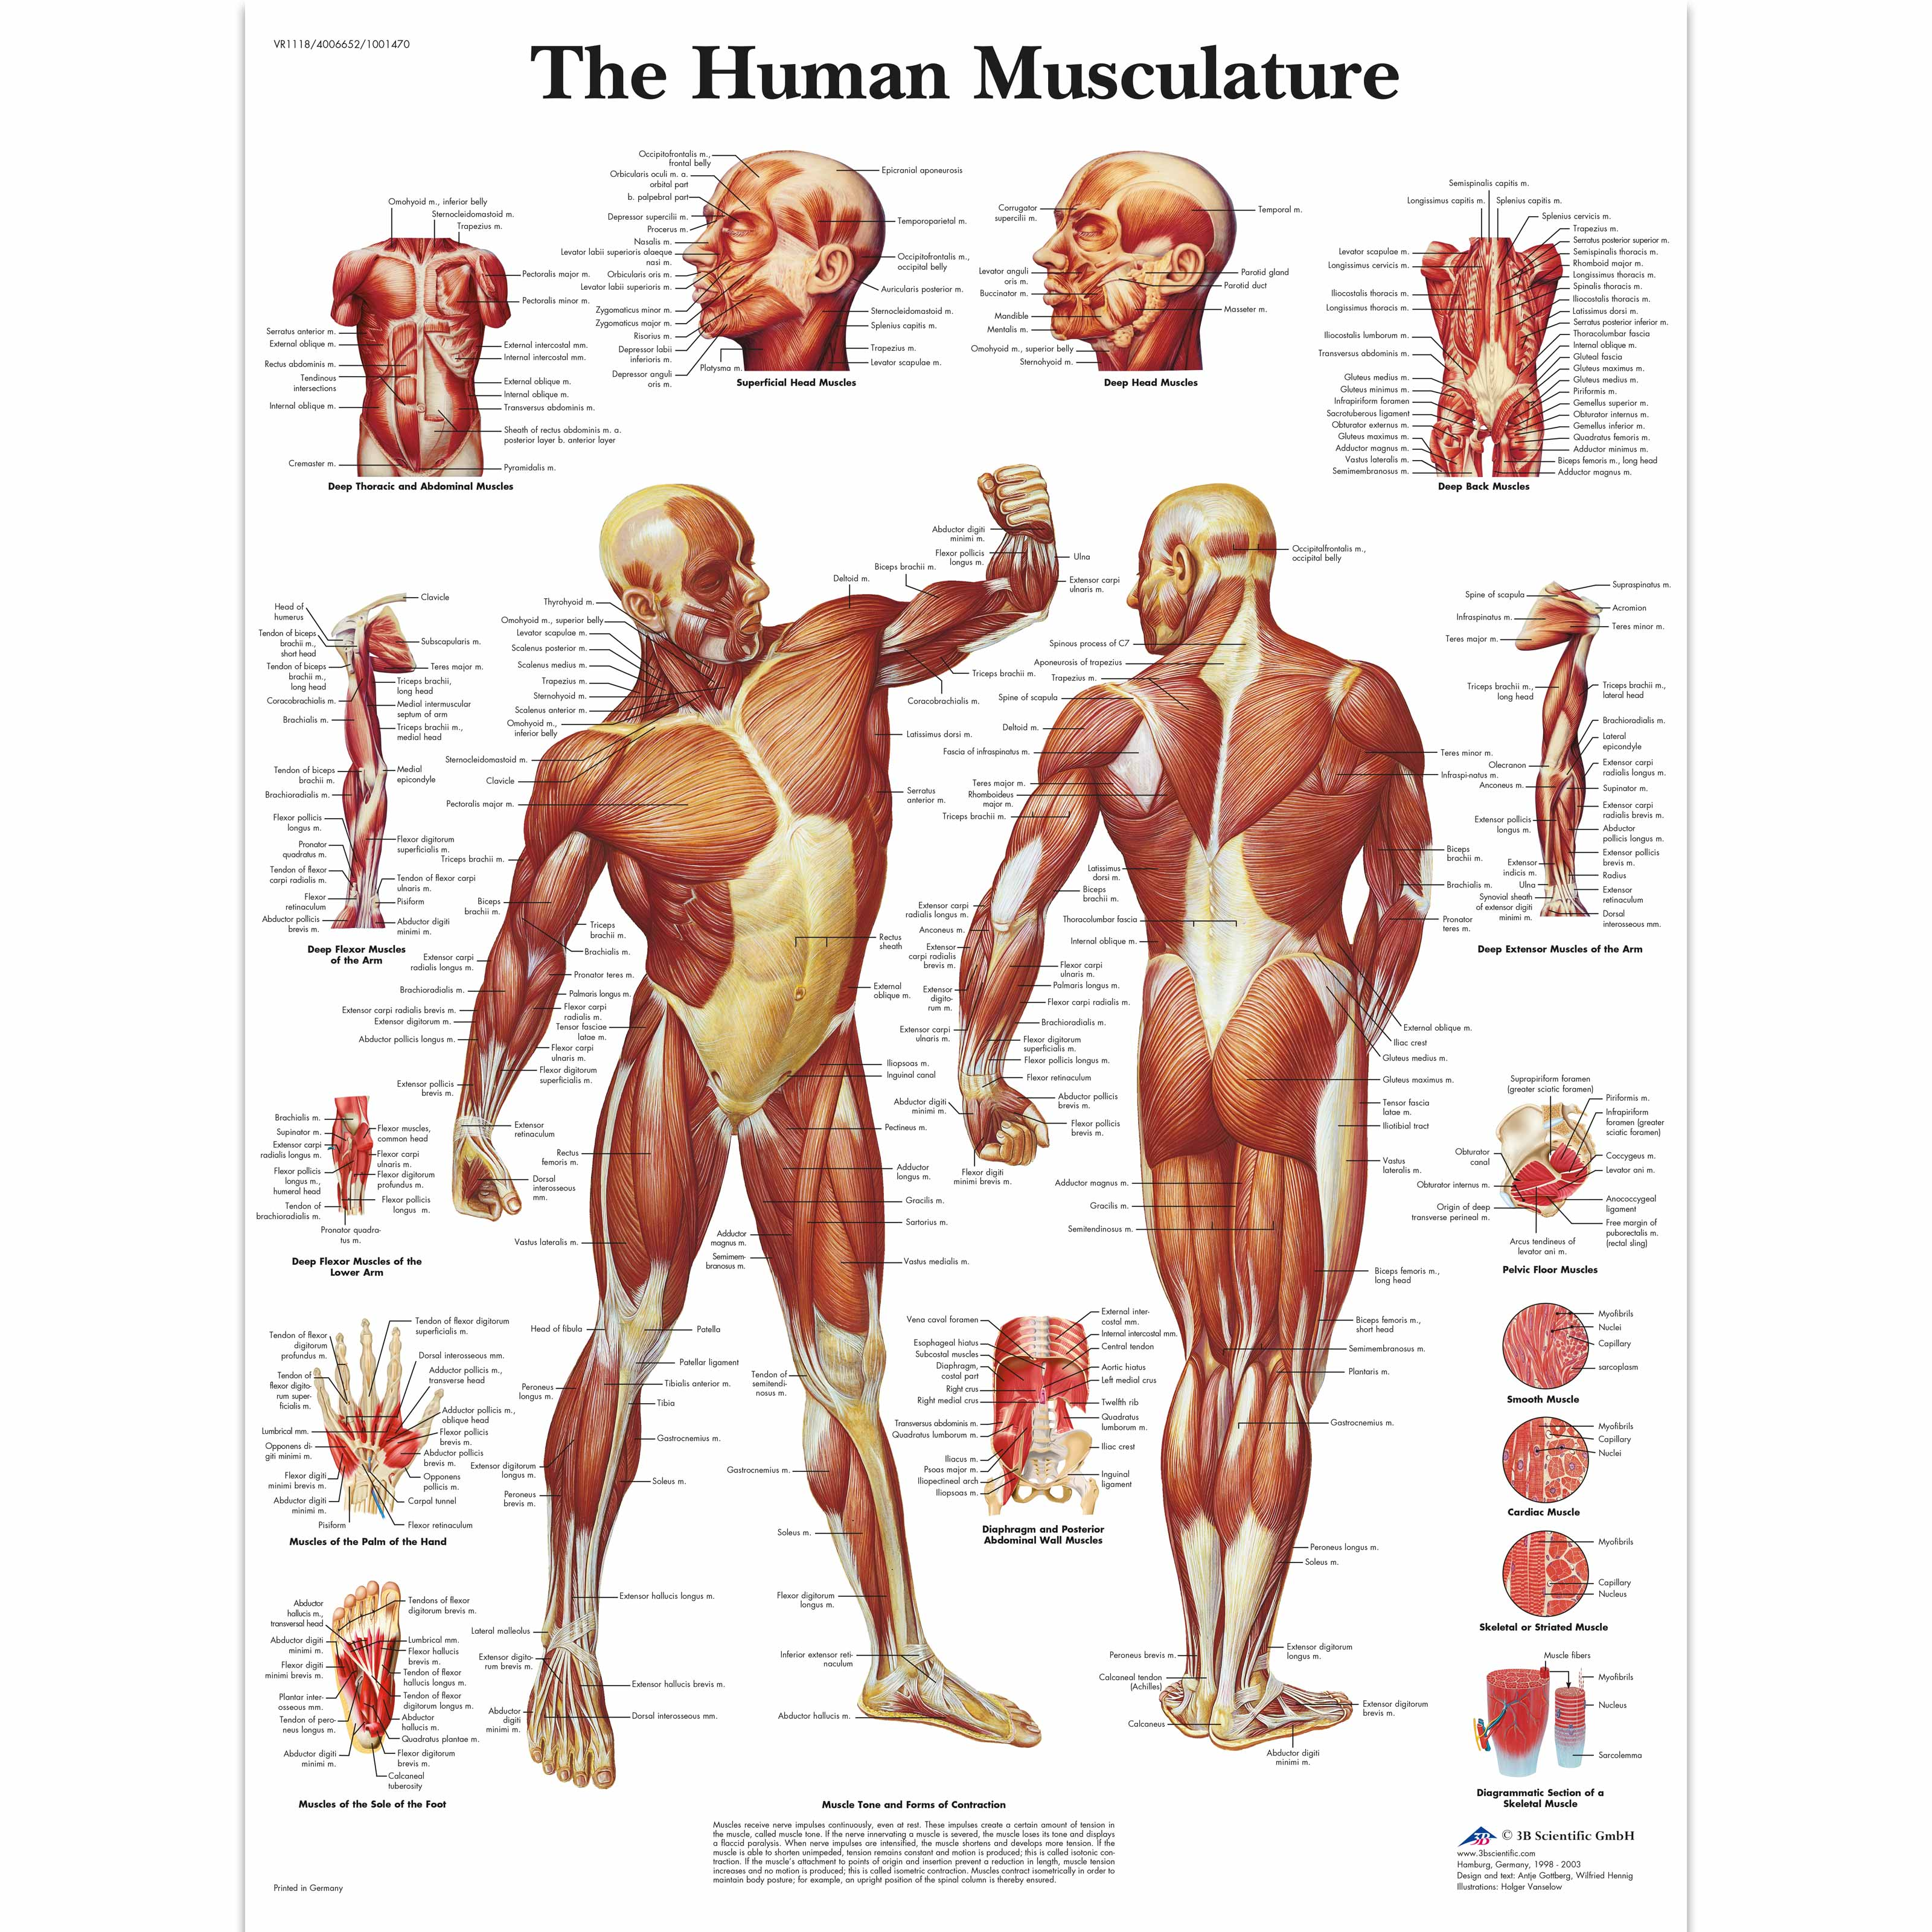 human muscle chart | human muscle poster | human musculature chart, Skeleton